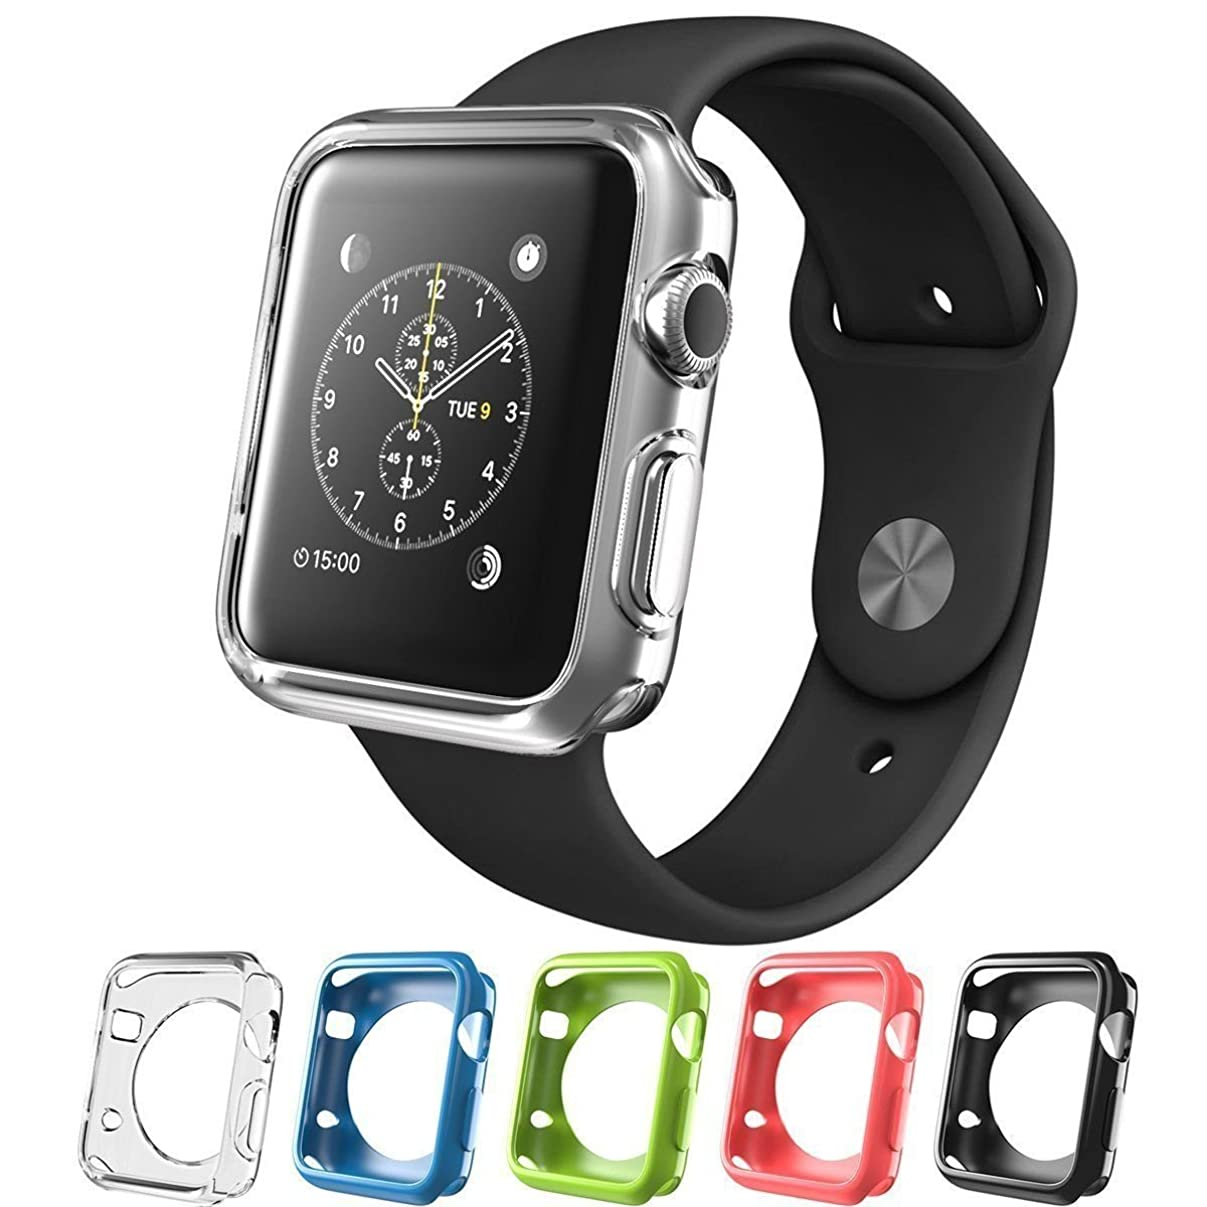 Tech Express 5 Solid Color Bumpers for Apple Watch (iWatch) Hybrid Cover Sleeve Protective Case Shockproof Ultra Thin Rugged Flexible Clear, Pink, Black, Green, Blue [TPU Gel] Lot of 5 (38mm) d48221399294164